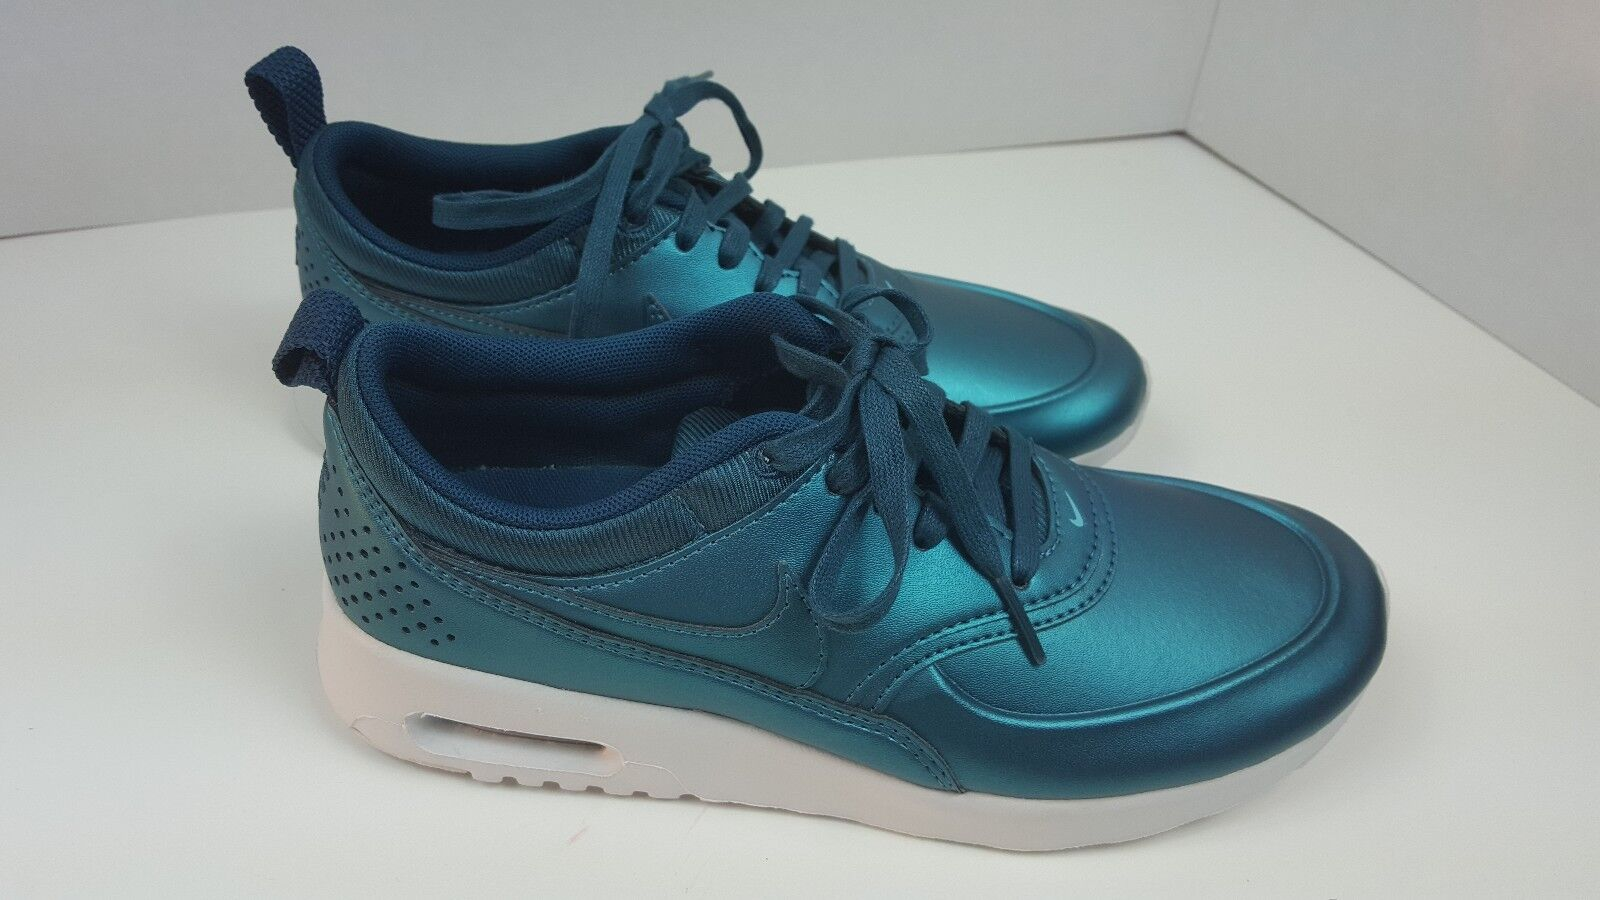 Nike Air Max Thea SE Metallic Dark Sea Teal Blue Green Womens Shoes 861674-901